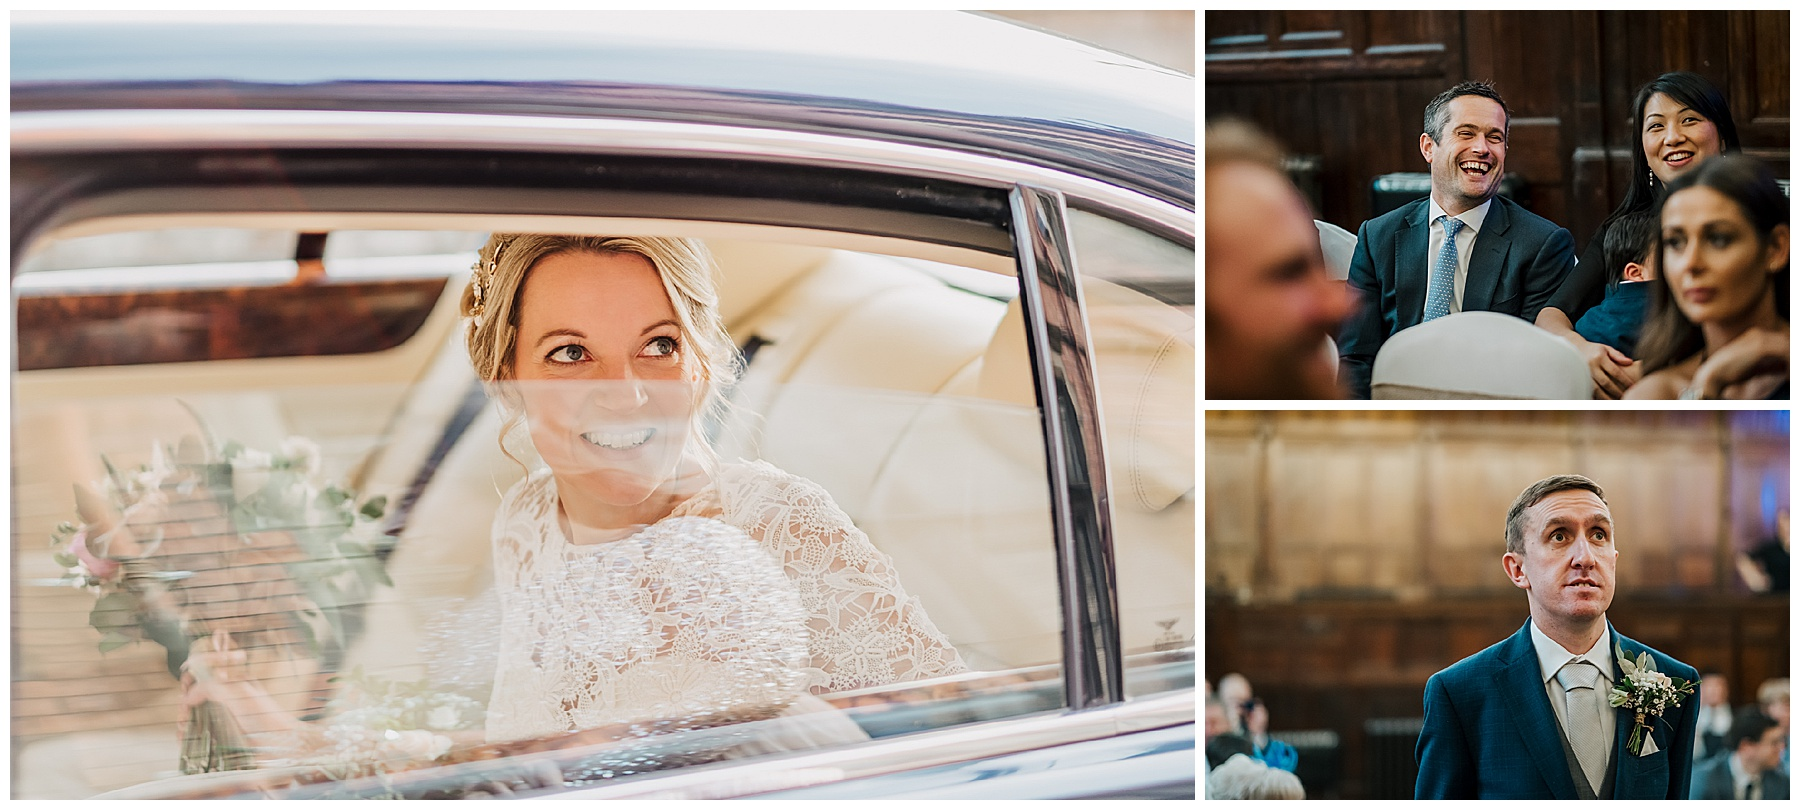 Vintage Town Wedding at The Old Courts